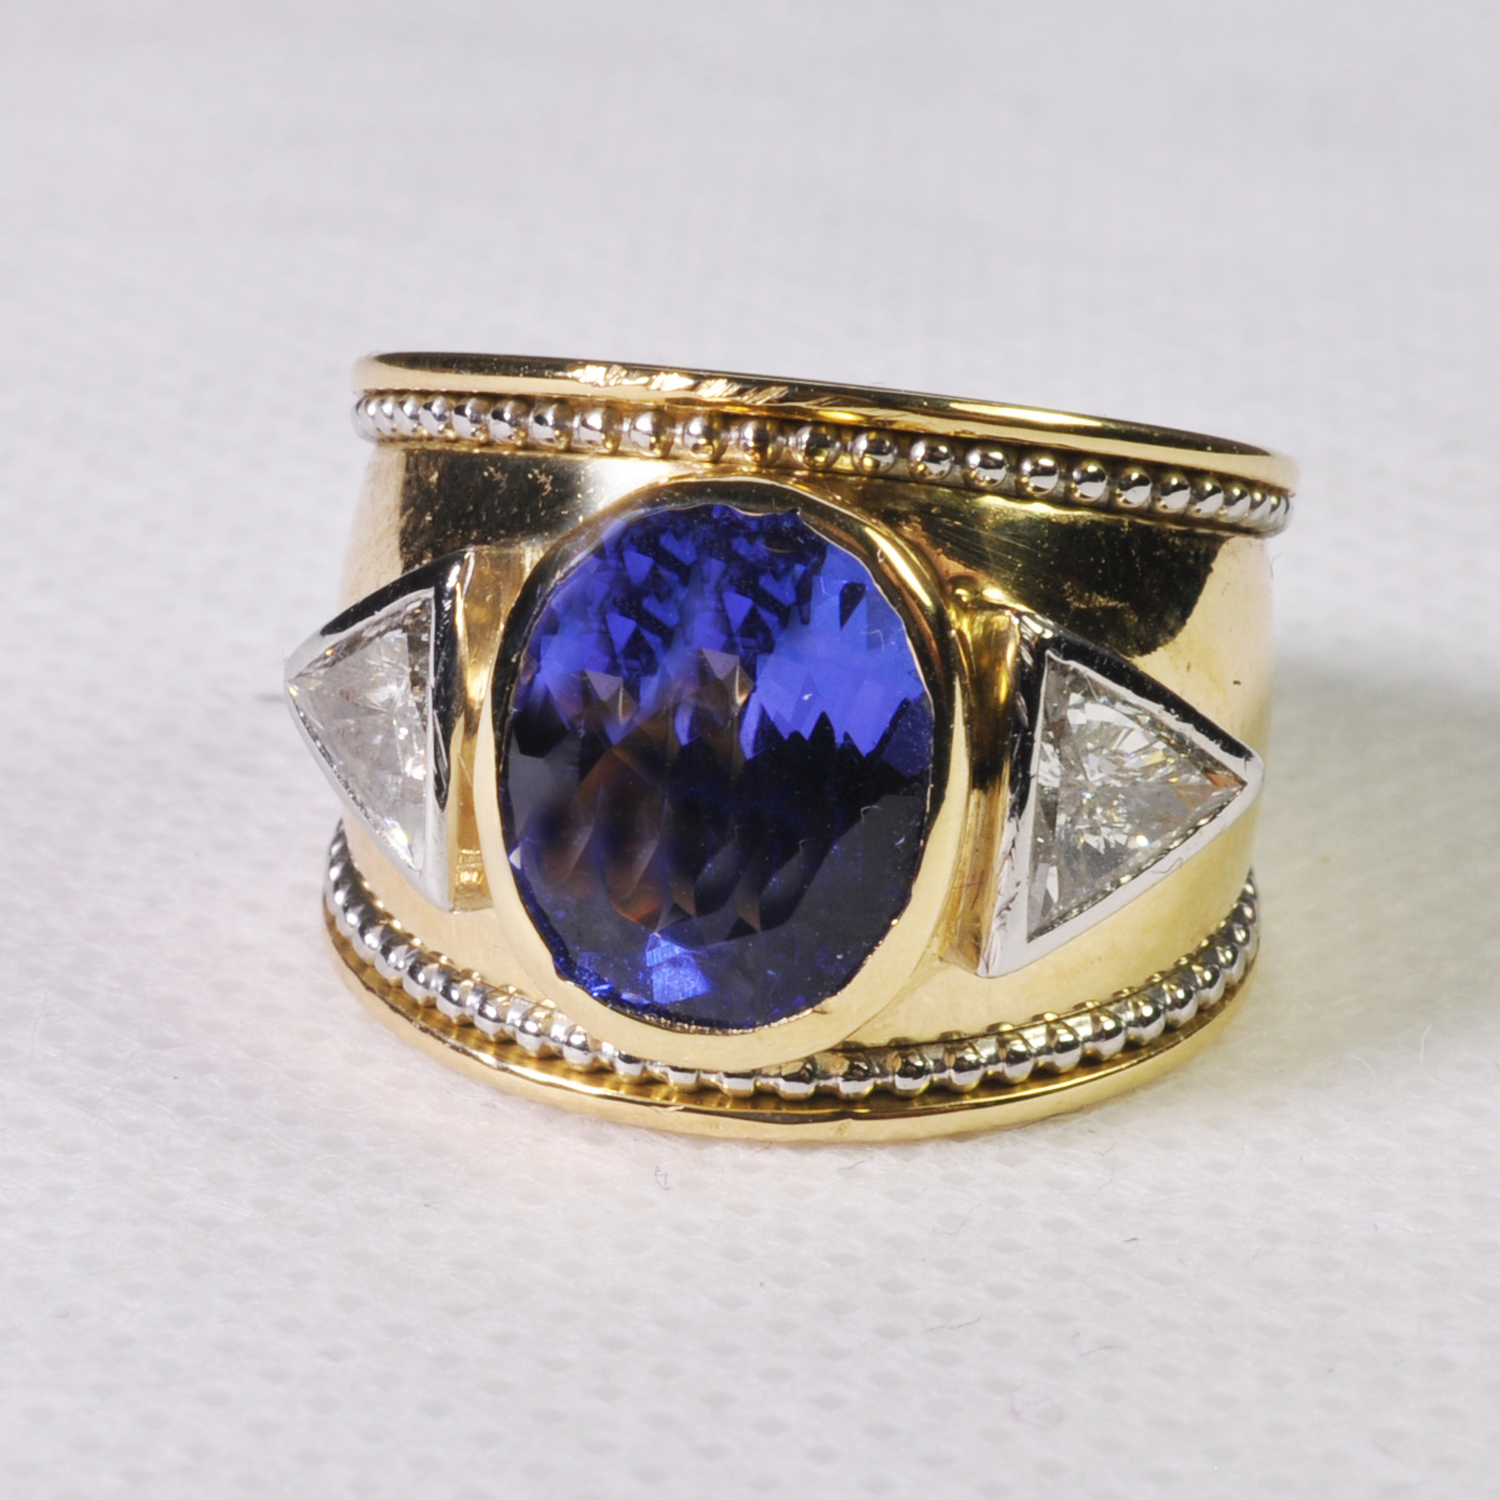 Antiques News - Antique Fair - Plaza - Theo Fennell tanzanite and diamond ring, £4,500.